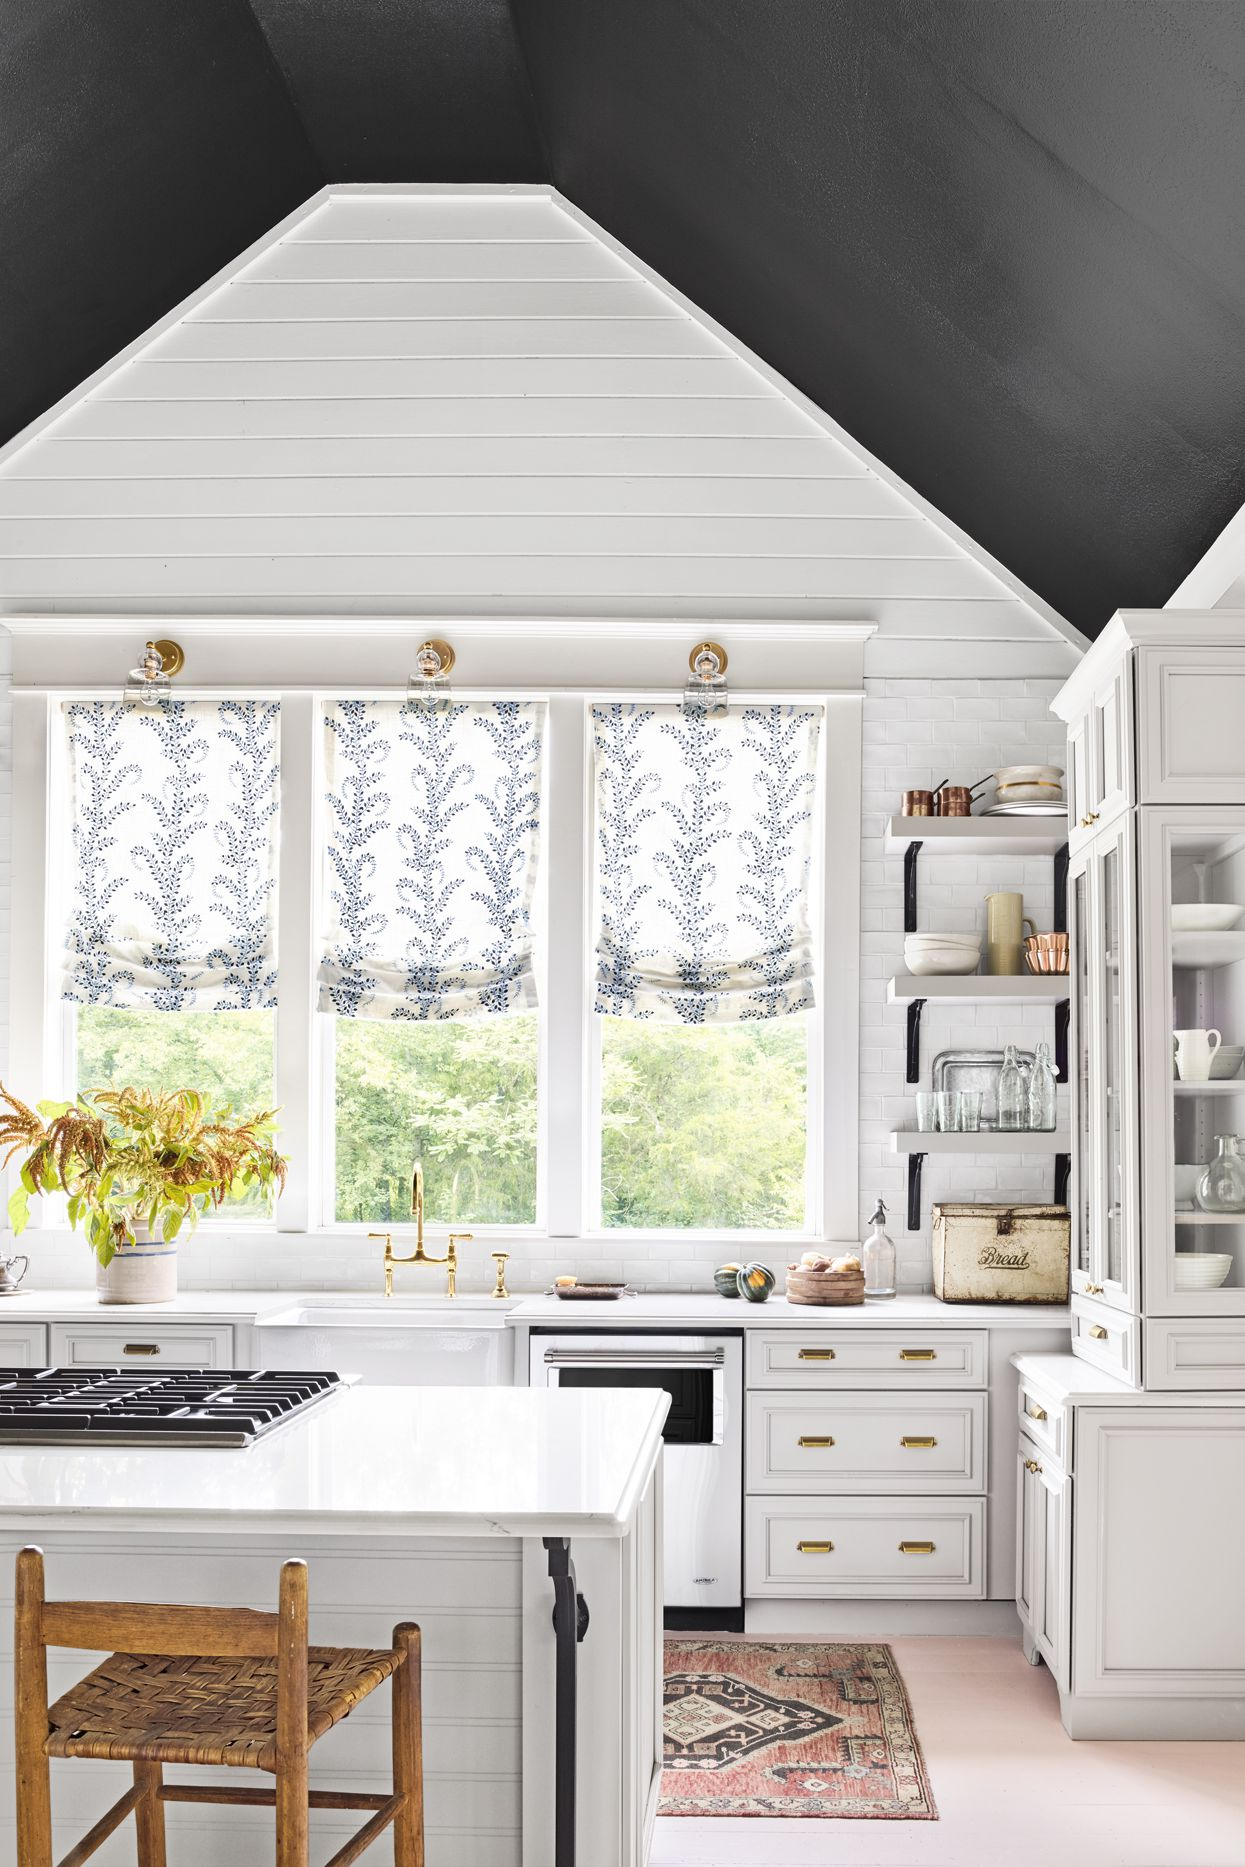 Holly Williams' house showcases original vaulted ceilings painted black. Are you a fan of the painted ceiling trend? Join the debate! #ceilings #paintedceilings #trend #interiors